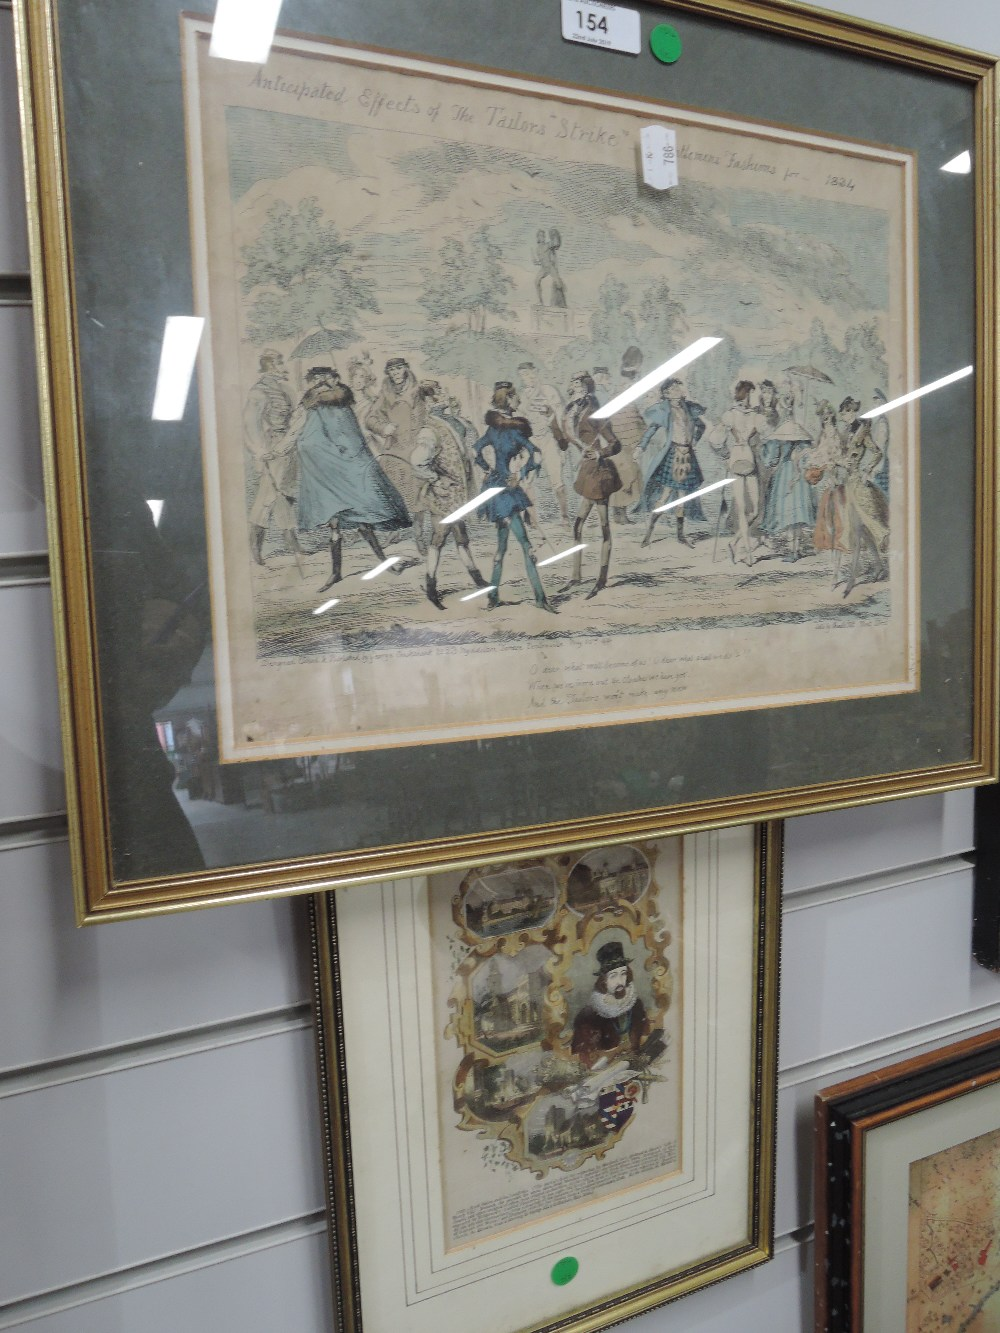 Lot 154 - Two early etchings on of Tailors strike 1834